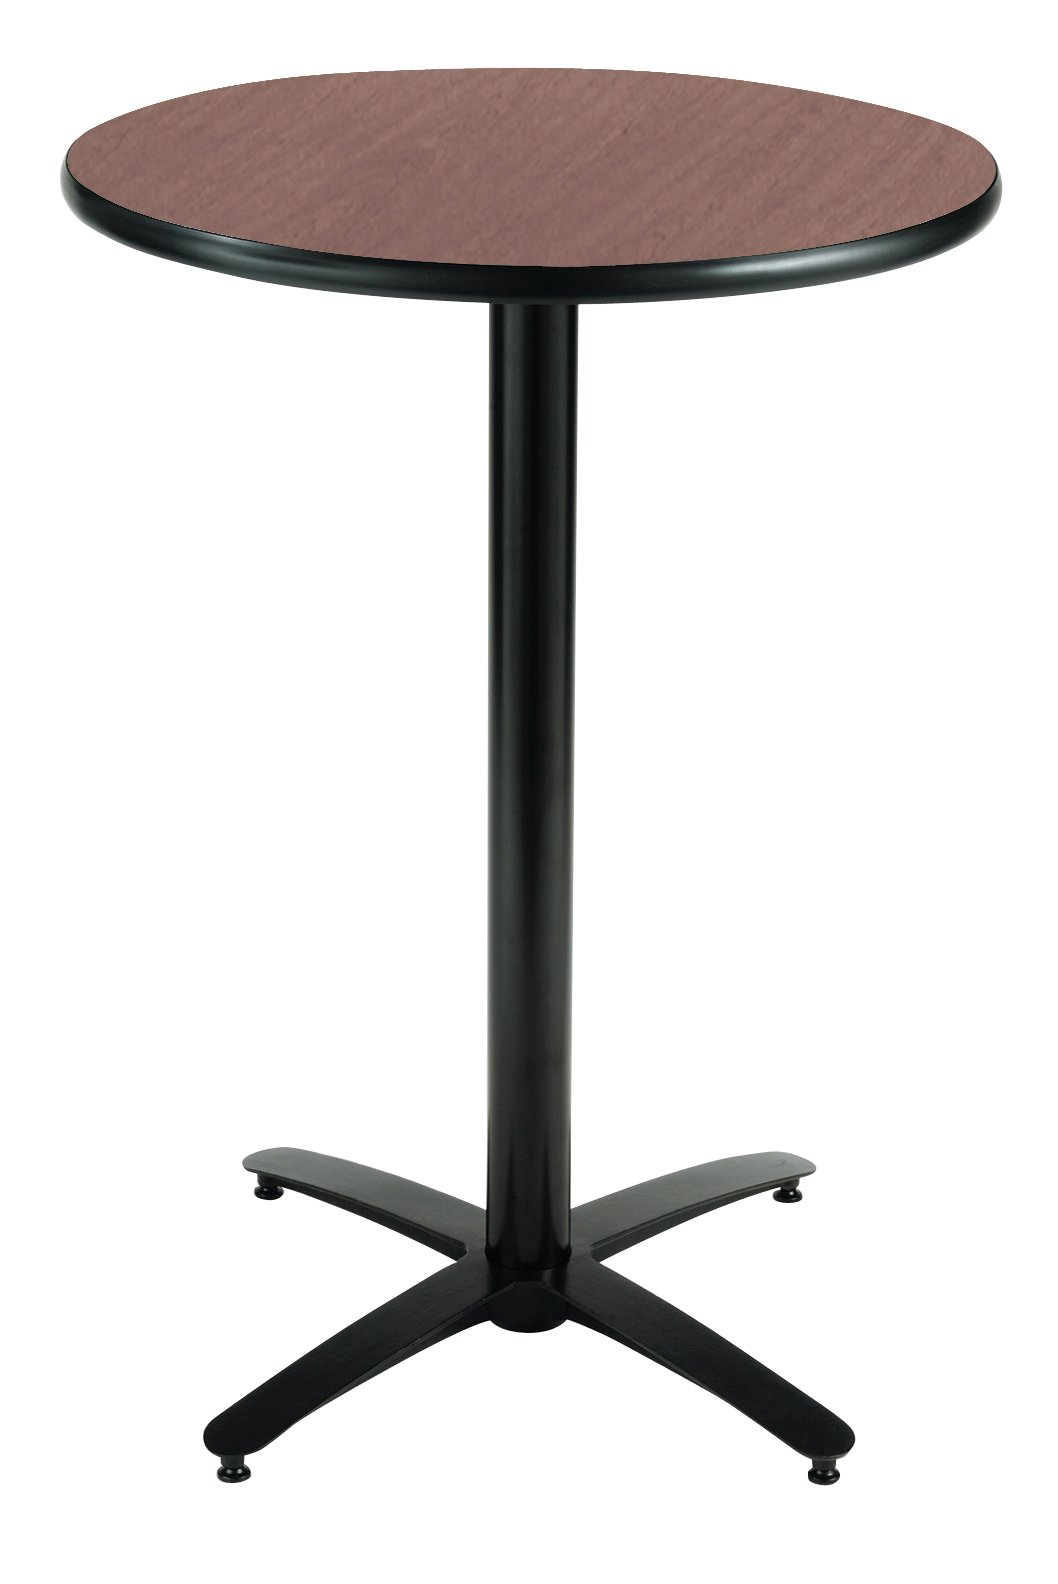 KFI Seating Round Bar Height Pedestal Table with Arched X Base, Commercial Grade, 42-Inch, Dark Mahogany Laminate, Made in the USA